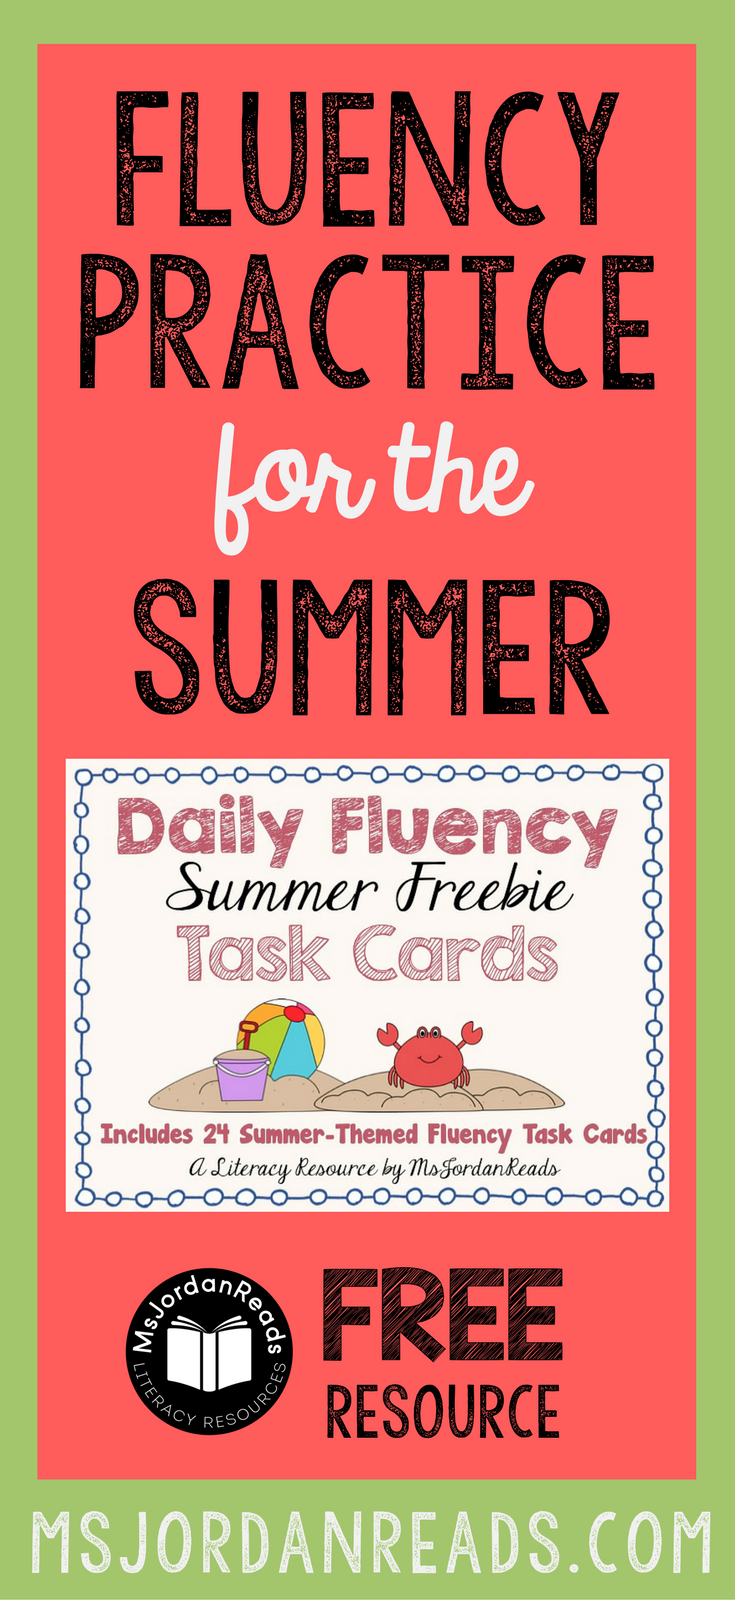 "Fluency Task Cards for the Summer that you can download for FREE! | Blog post includes other summer fluency ideas to help students practice fluency and avoid the typical ""summer slide"" reading regression."